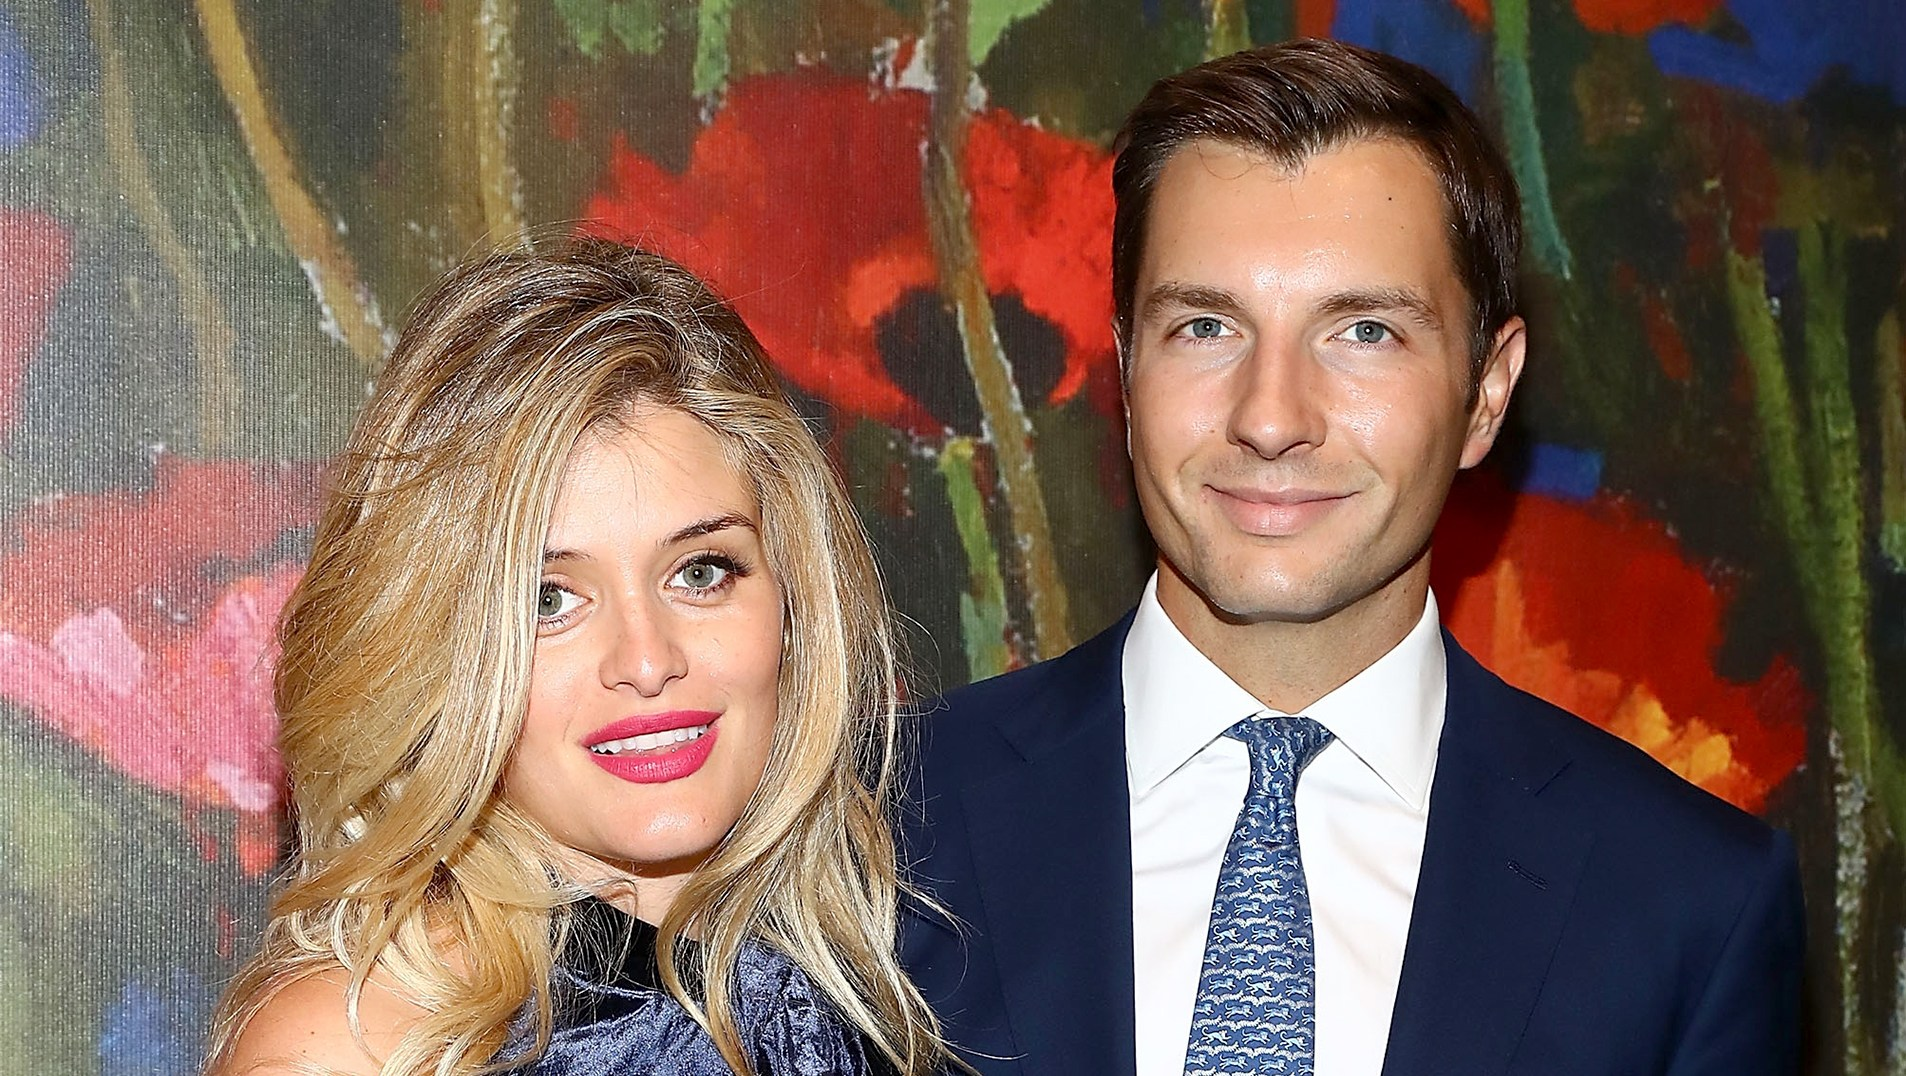 Daphne Oz Is Pregnant, Expecting Her Fourth Child With John Jovanovic: See Her Baby Bump